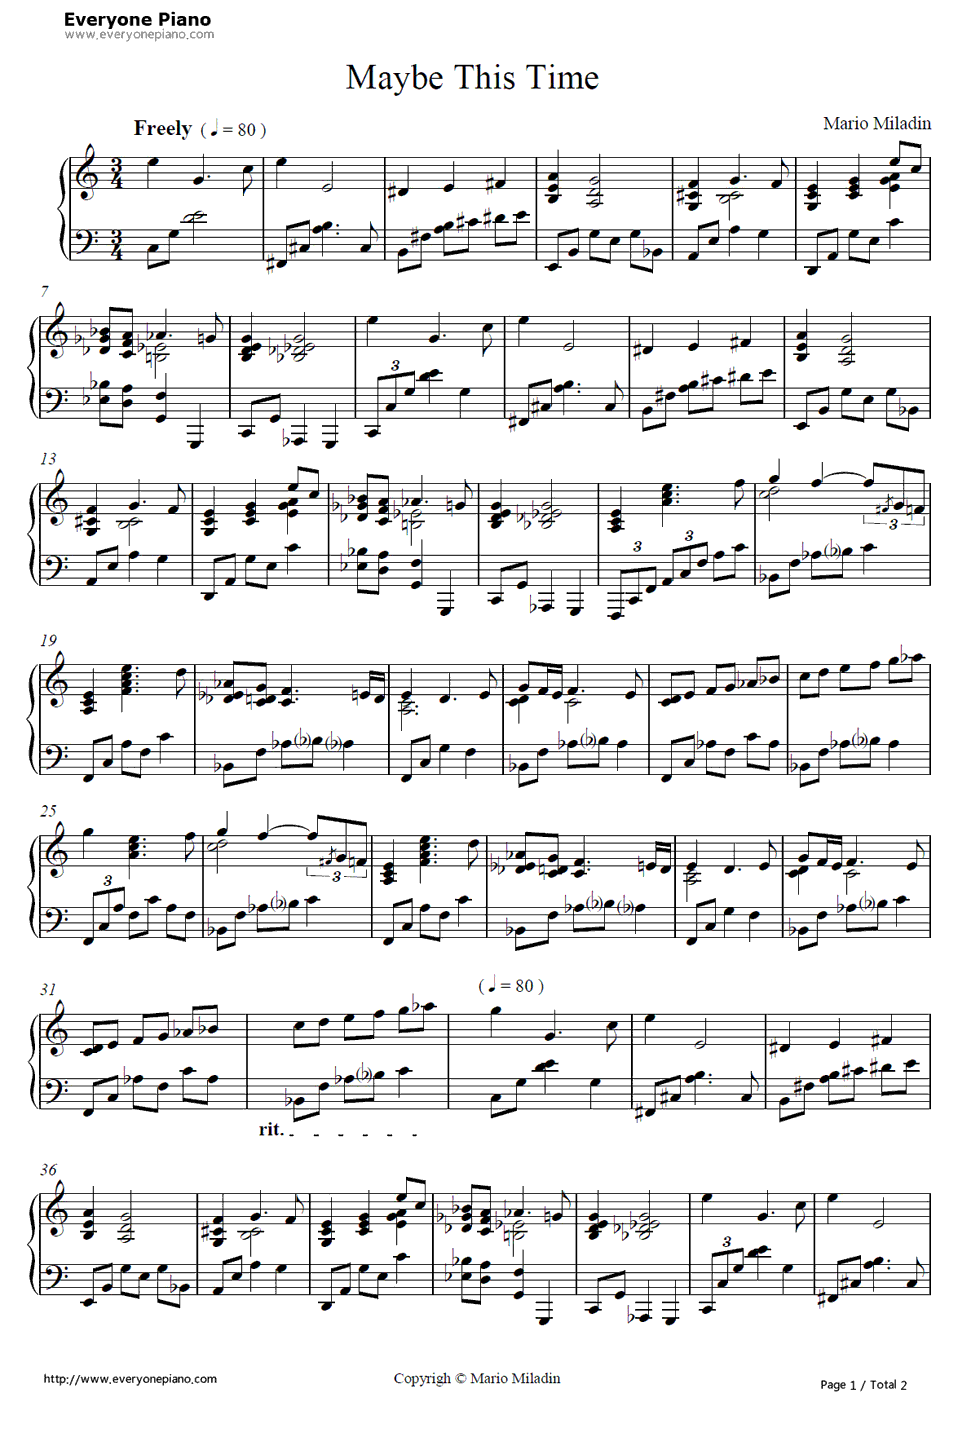 Maybe This Time-Mario Miladin Stave Preview 1-Free Piano Sheet Music u0026 Piano Chords